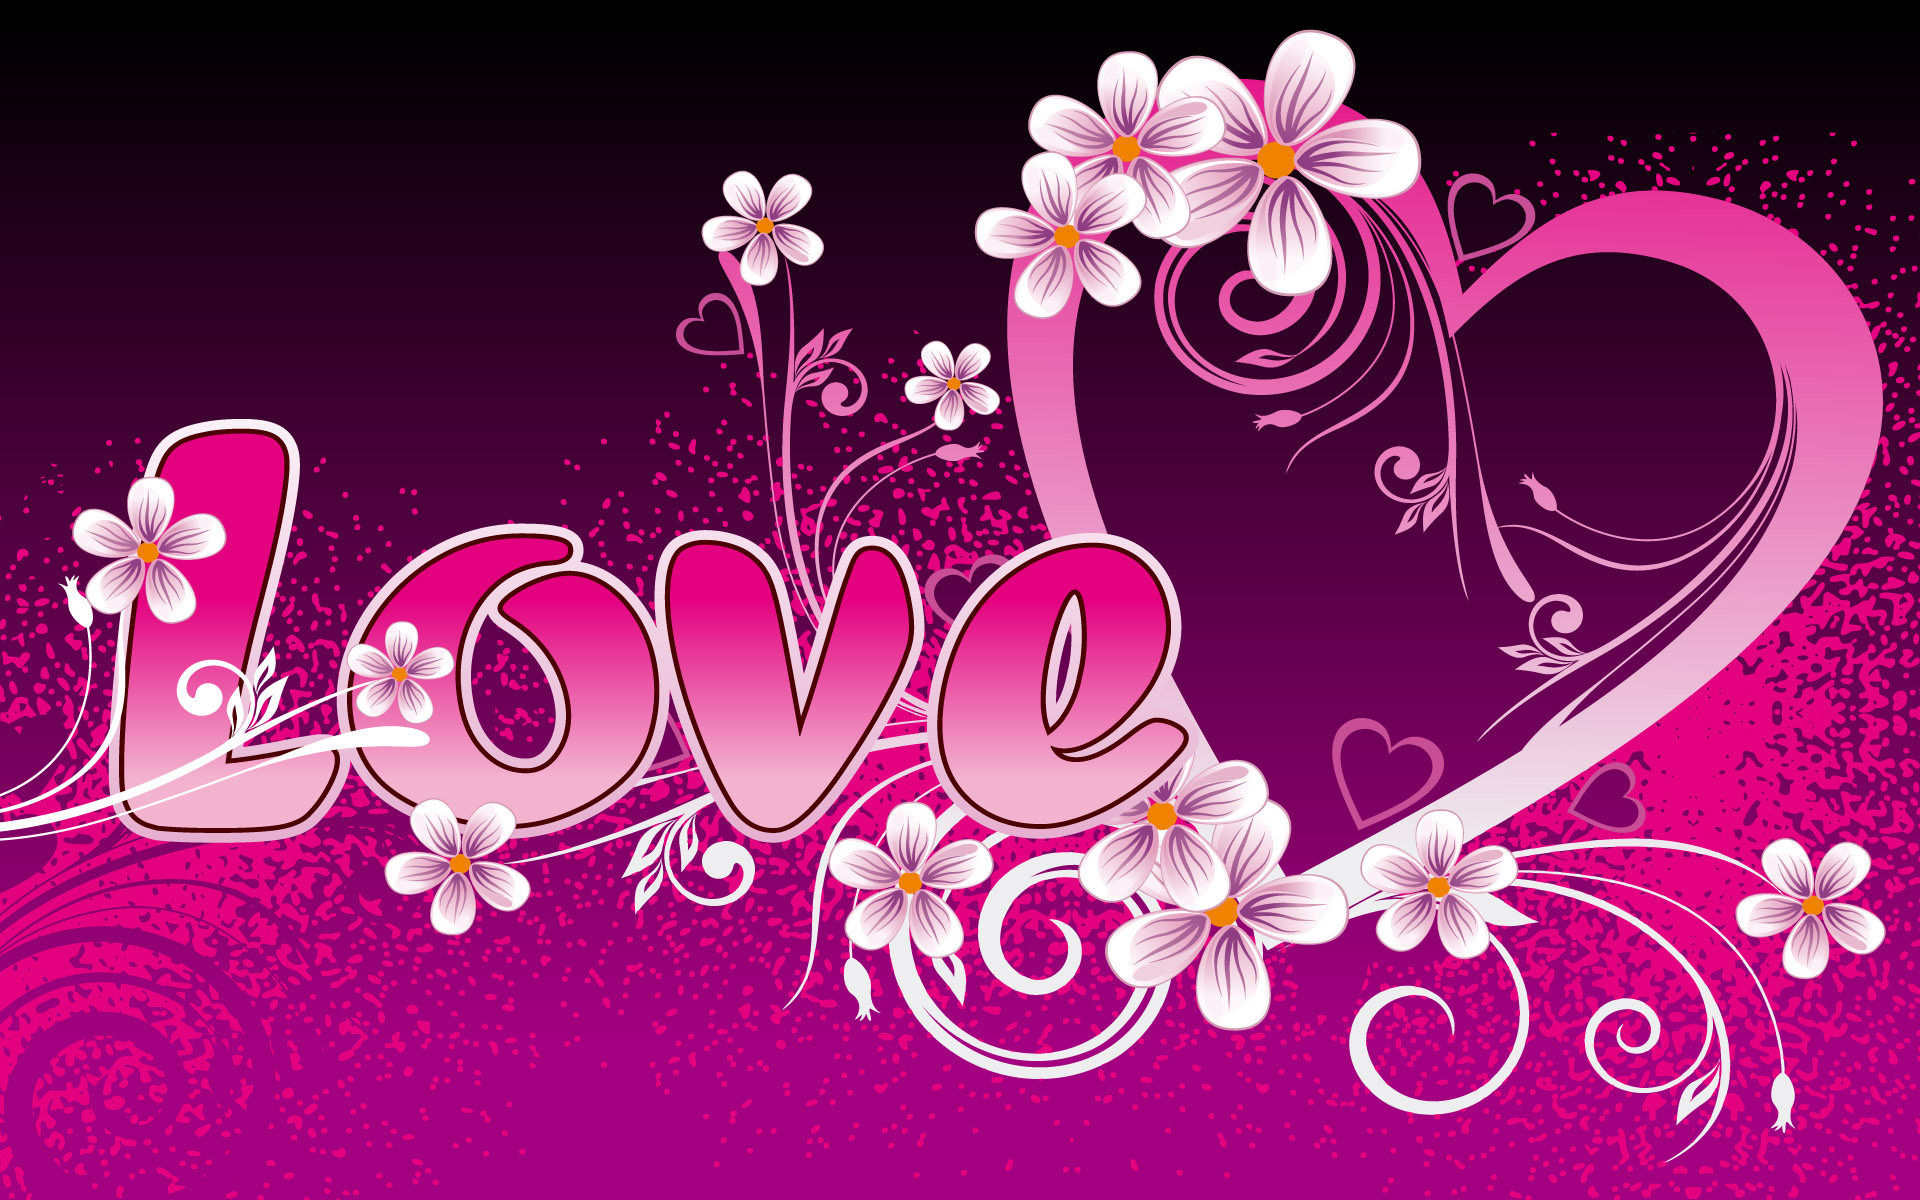 Love Heart wallpaper - 37228